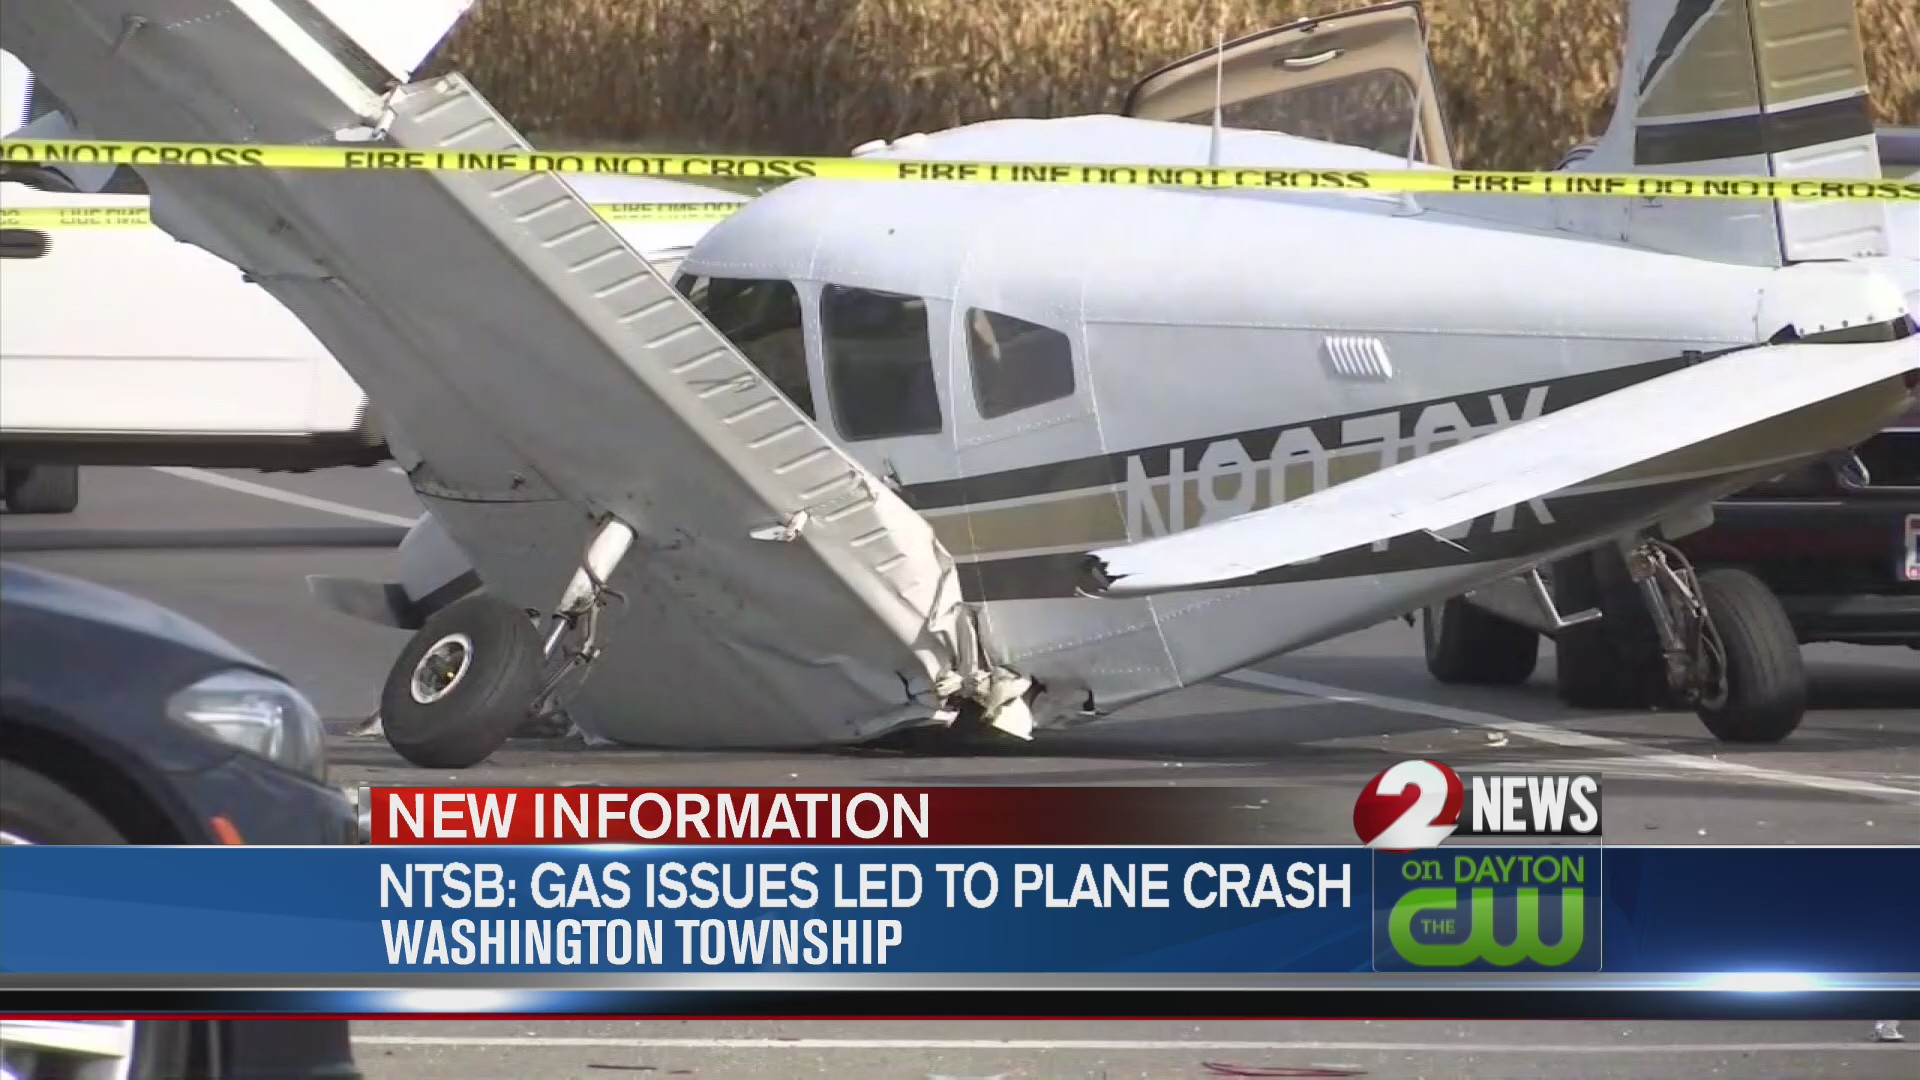 Gas issues led to plane crash in Washington Twp.